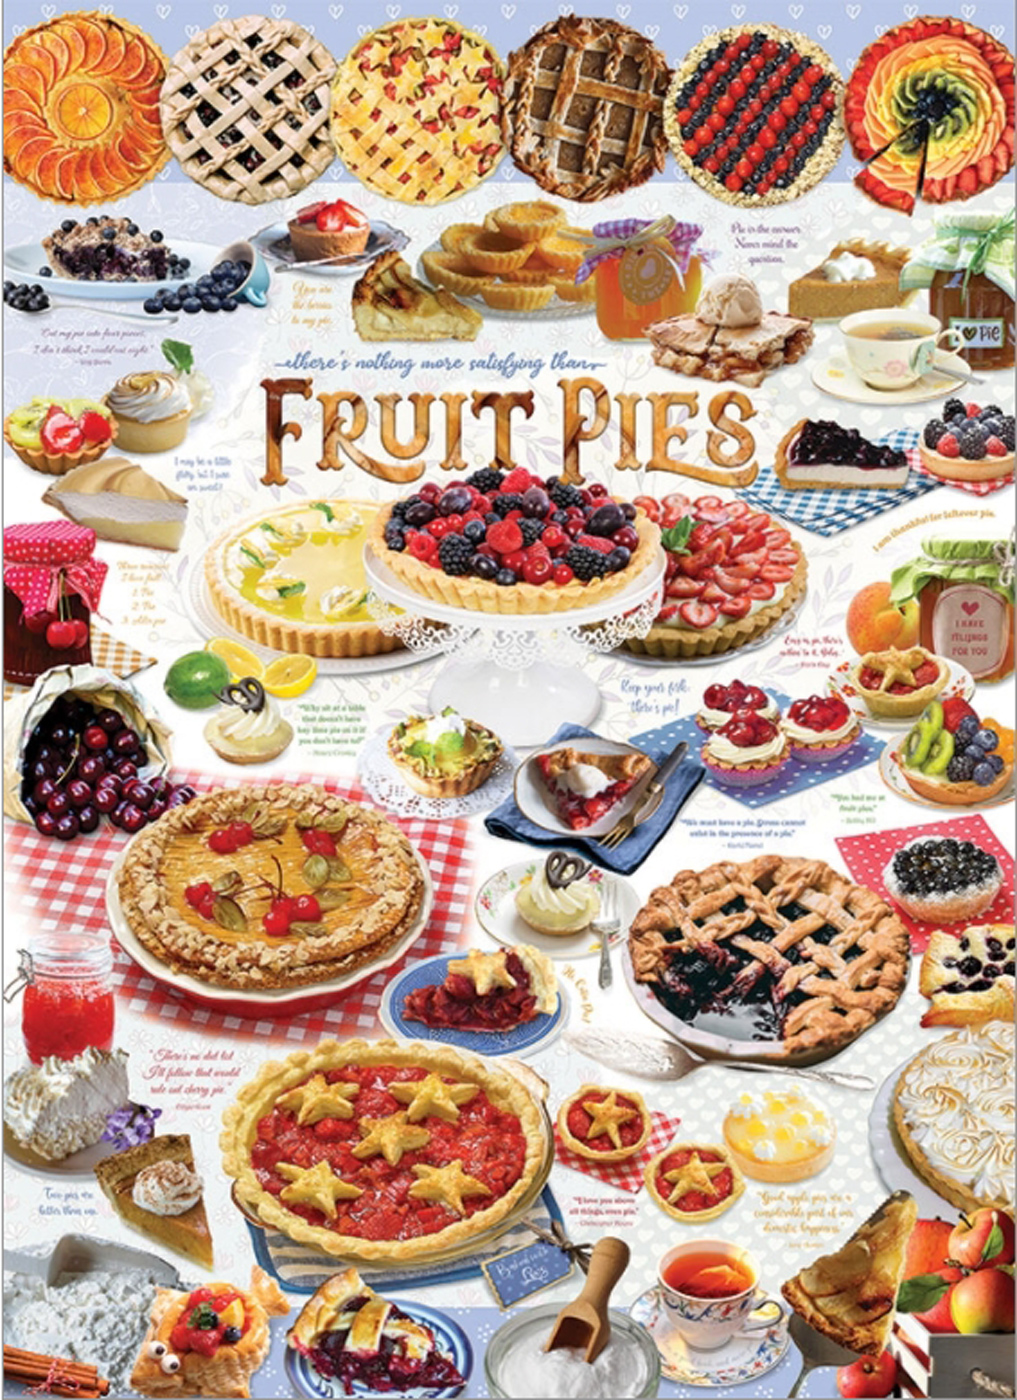 Pie Time Food and Drink Jigsaw Puzzle